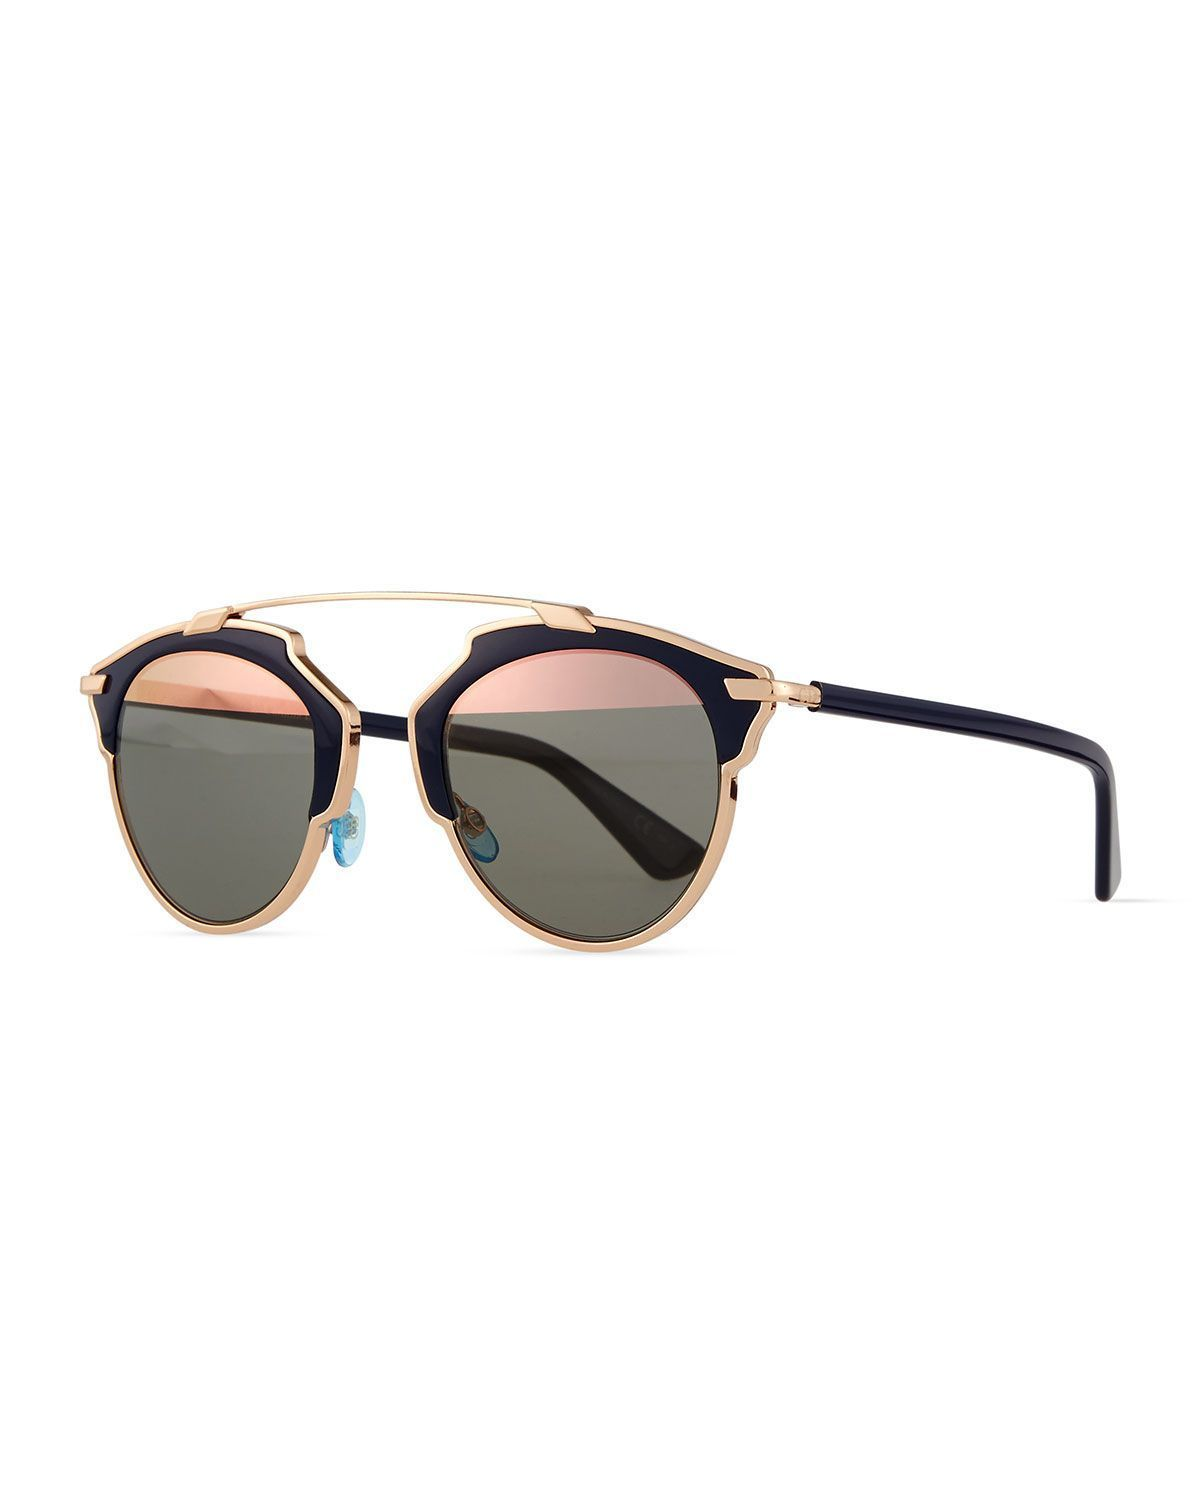 b798da6fc6 Dior So Real Brow Bar Sunglasses